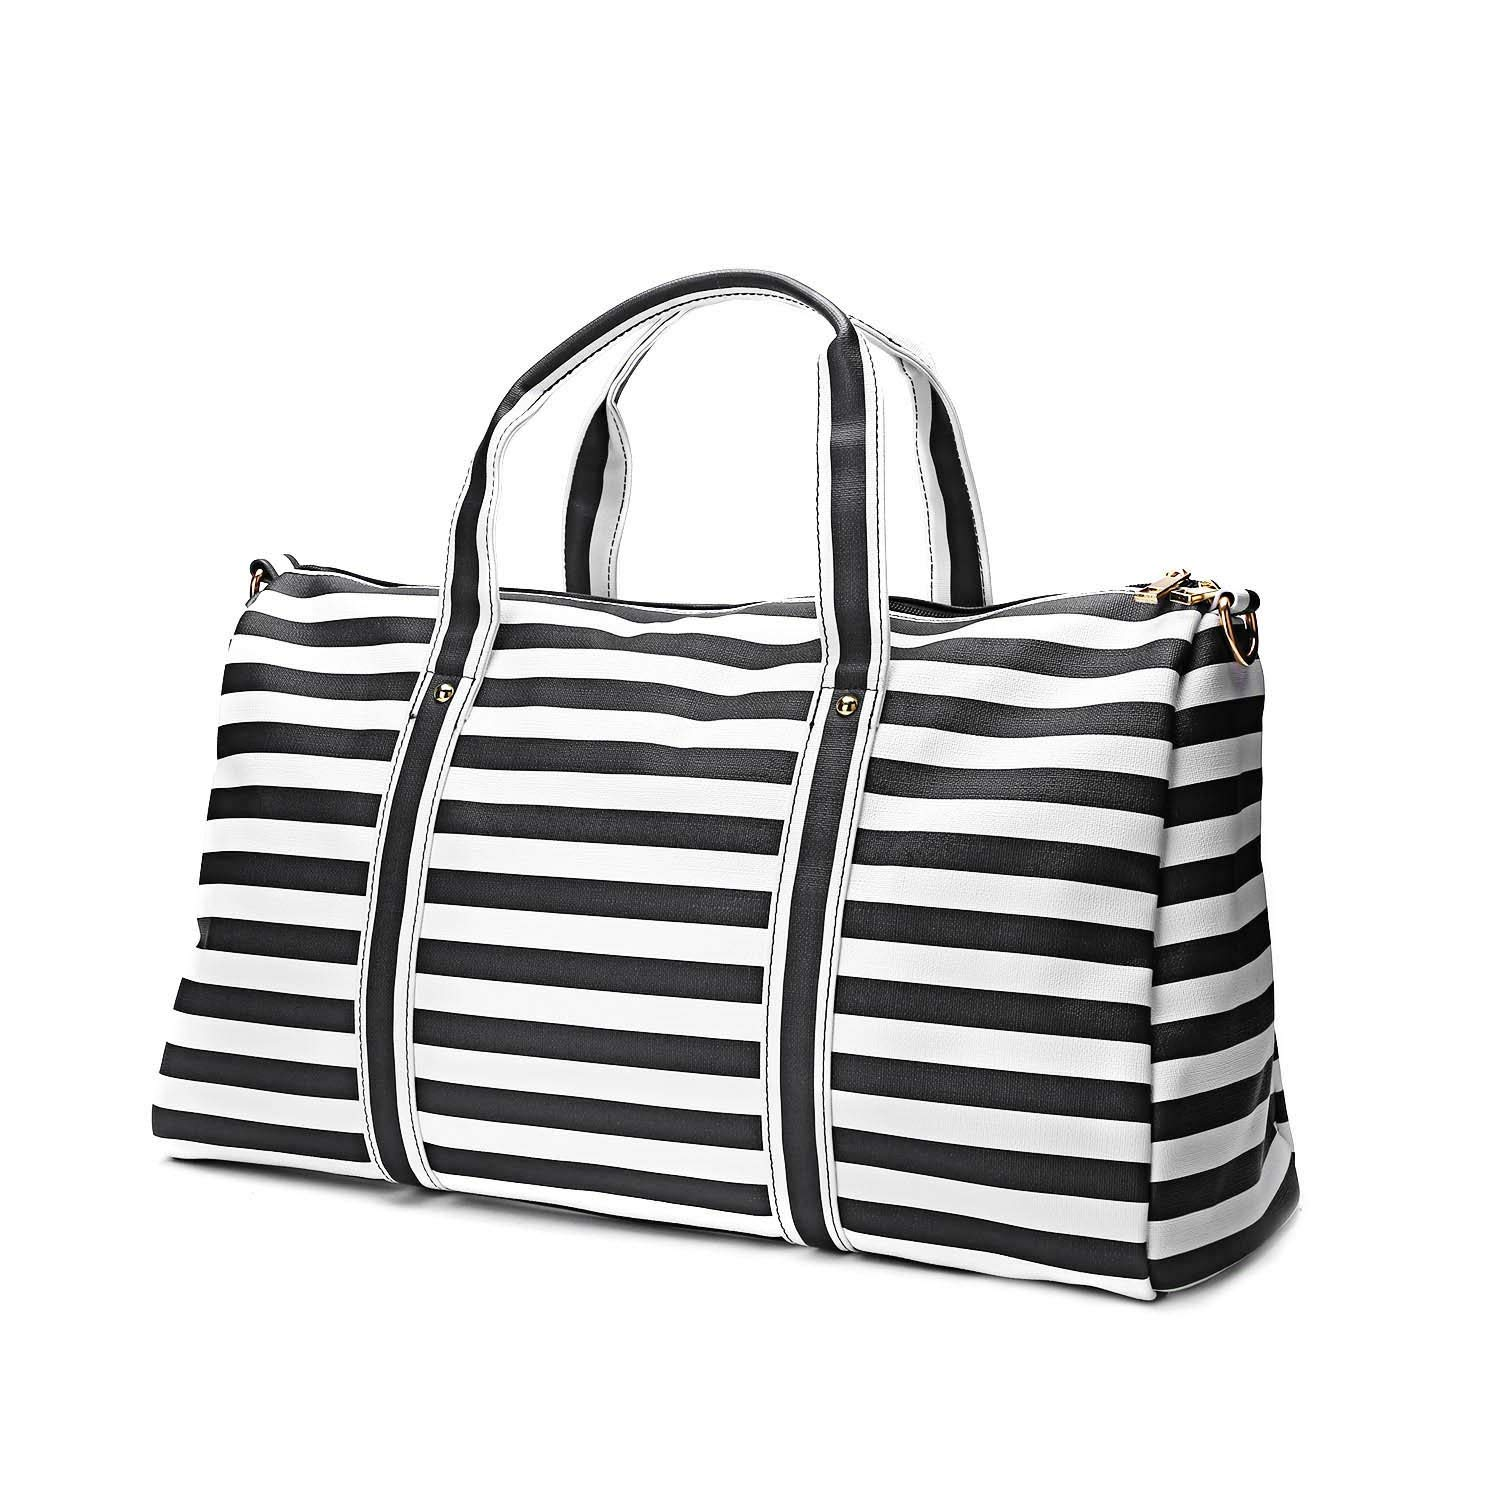 033b941576b4 Cheap White Overnight Bag, find White Overnight Bag deals on line at ...